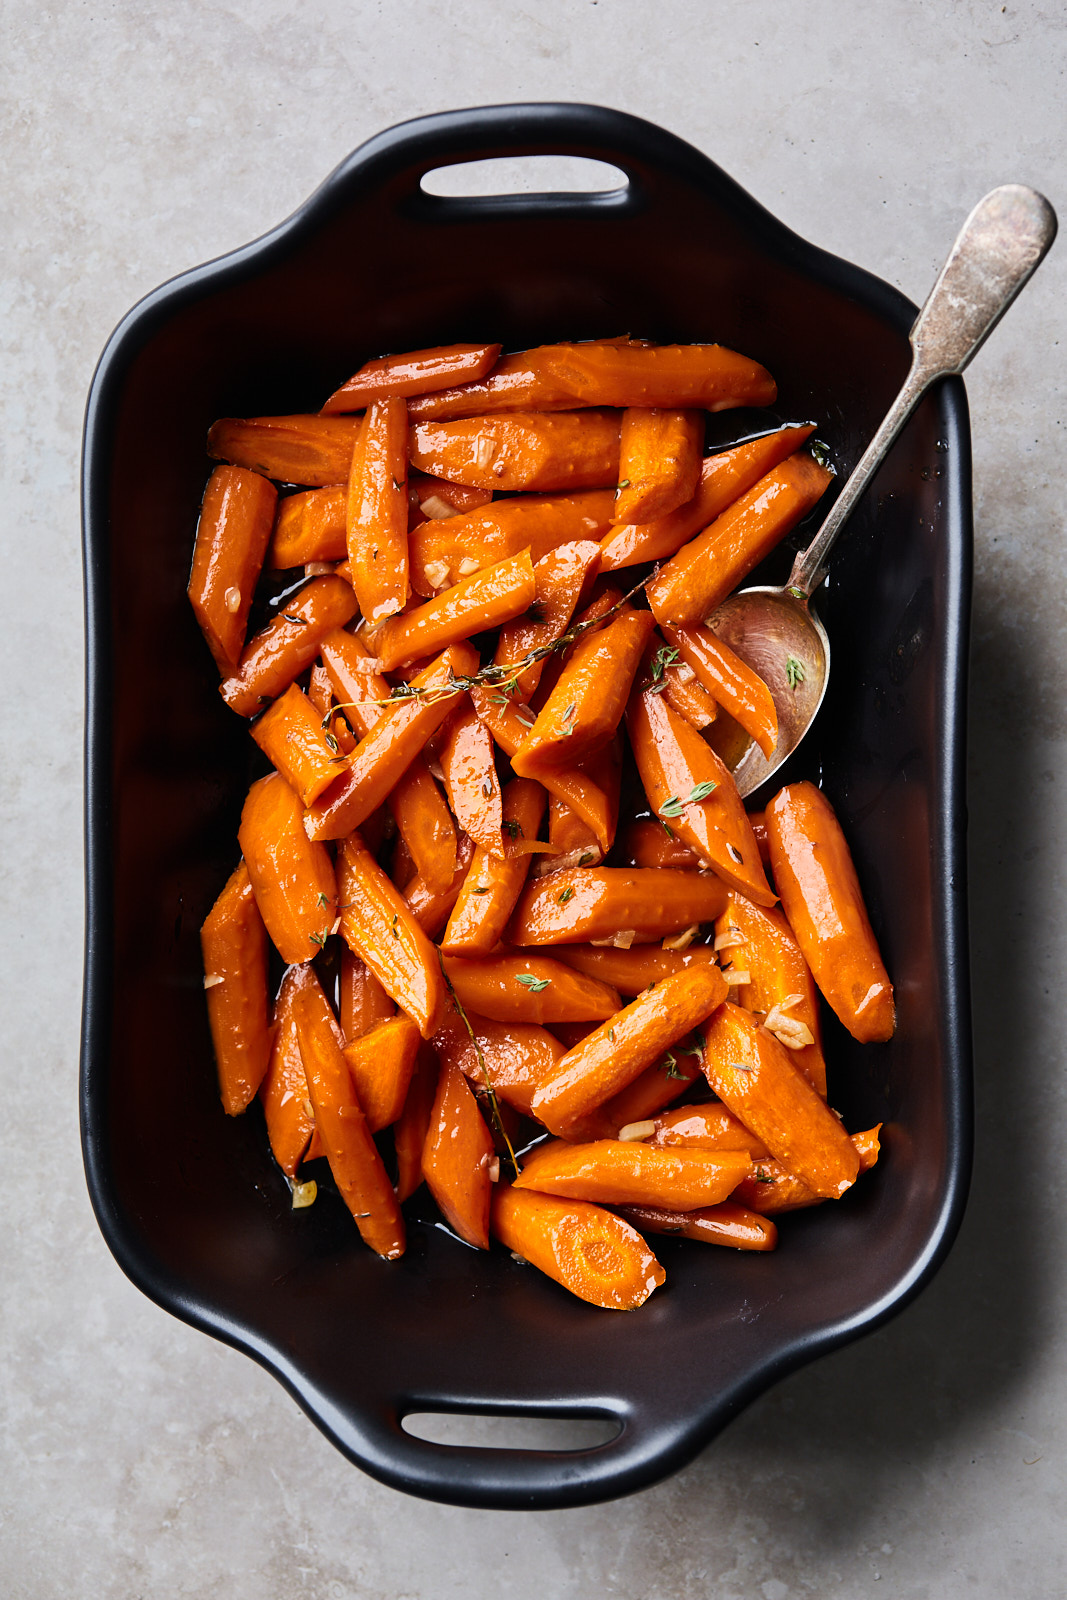 Brown Butter Garlic Maple Roasted Carrot